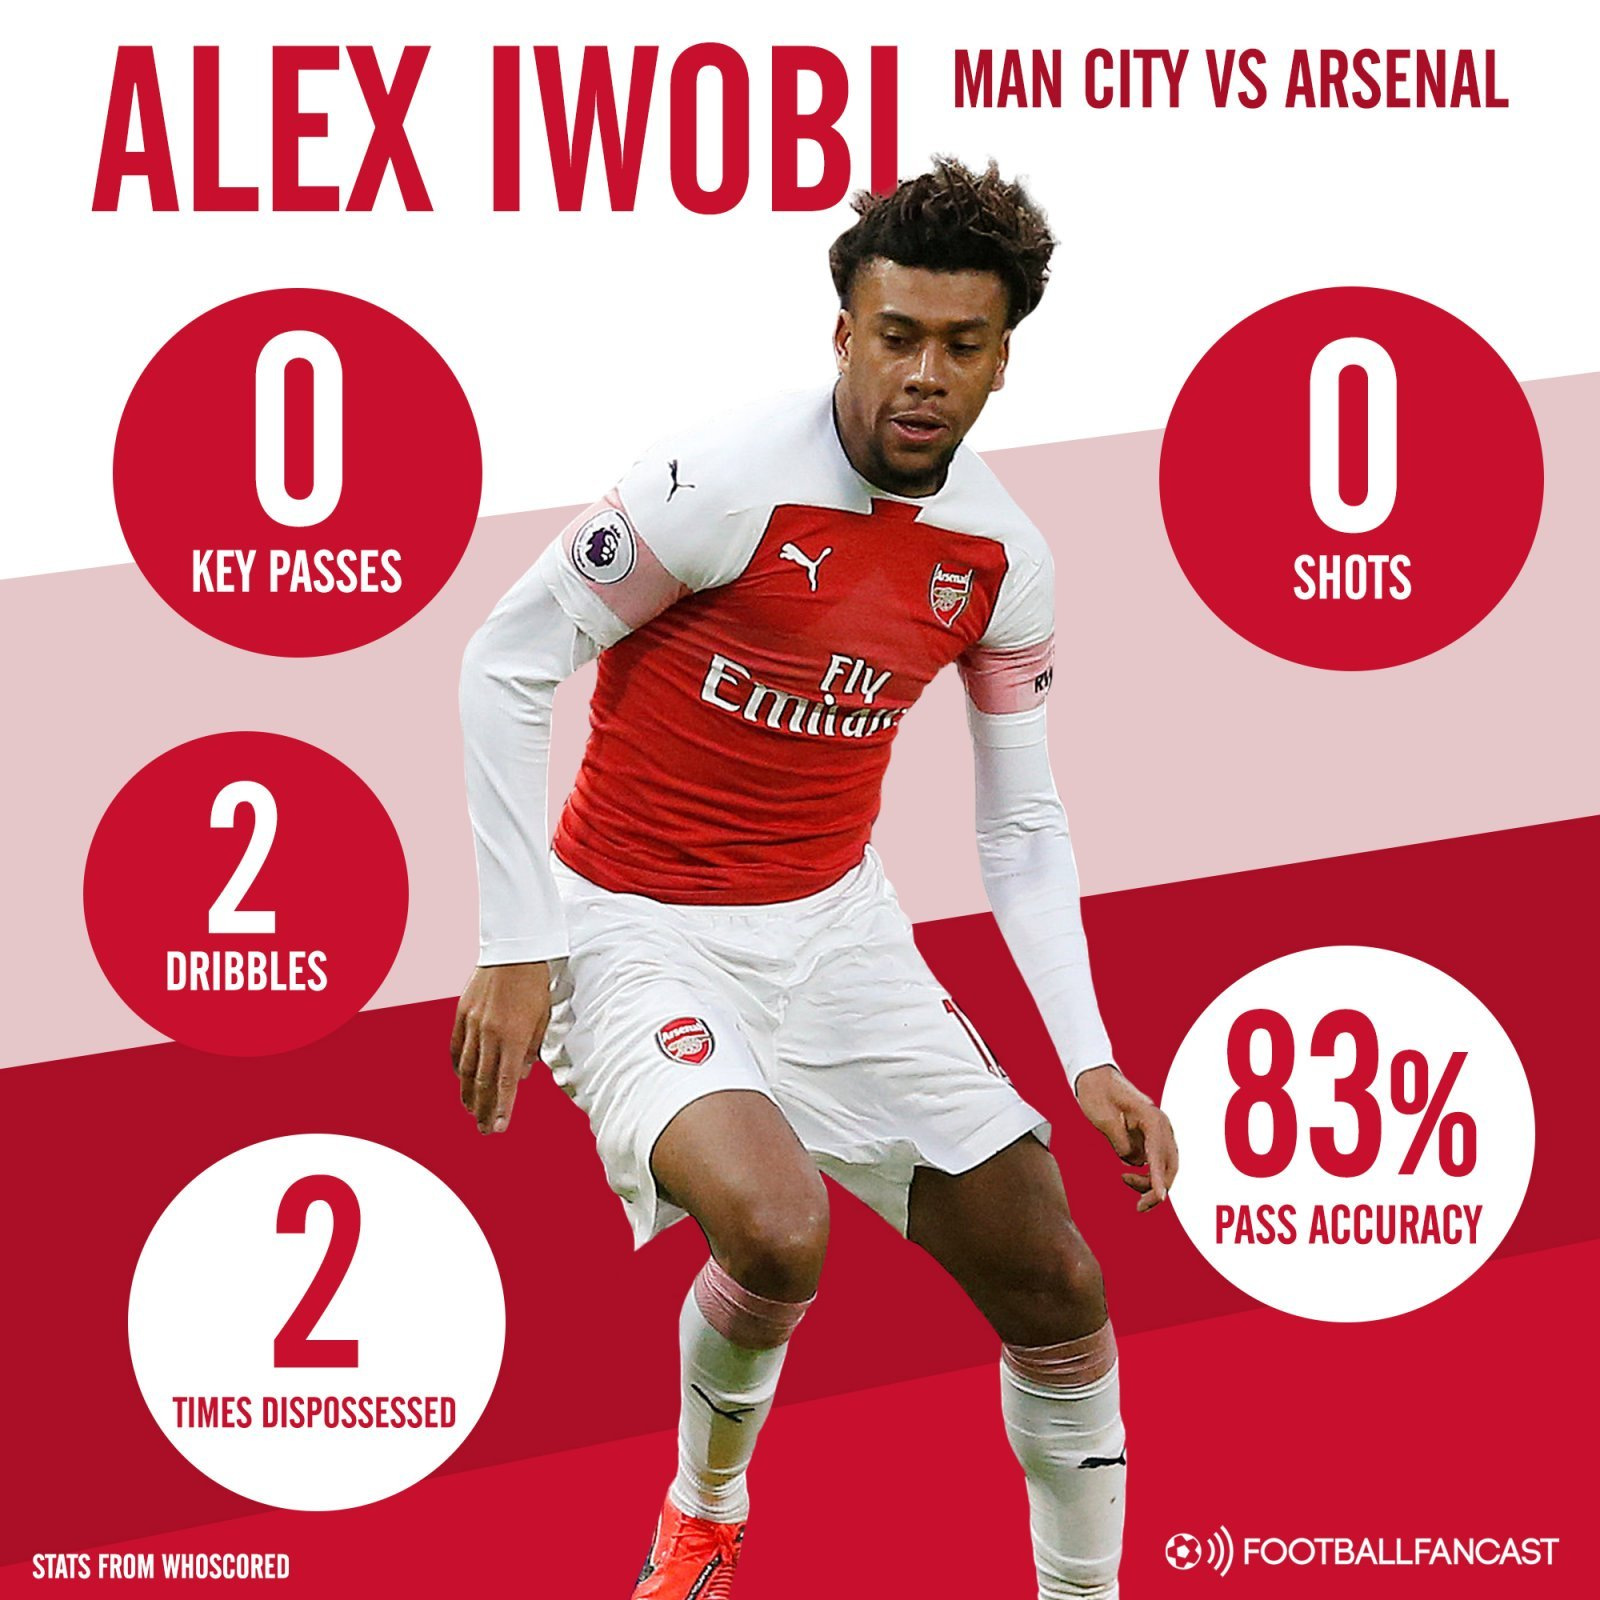 Alex Iwobi Manchester City vs Arsenal PIN Graphic - Opinion: Emery deserves plenty of blame for 21-cap ace's torrid showing for Arsenal on Sunday